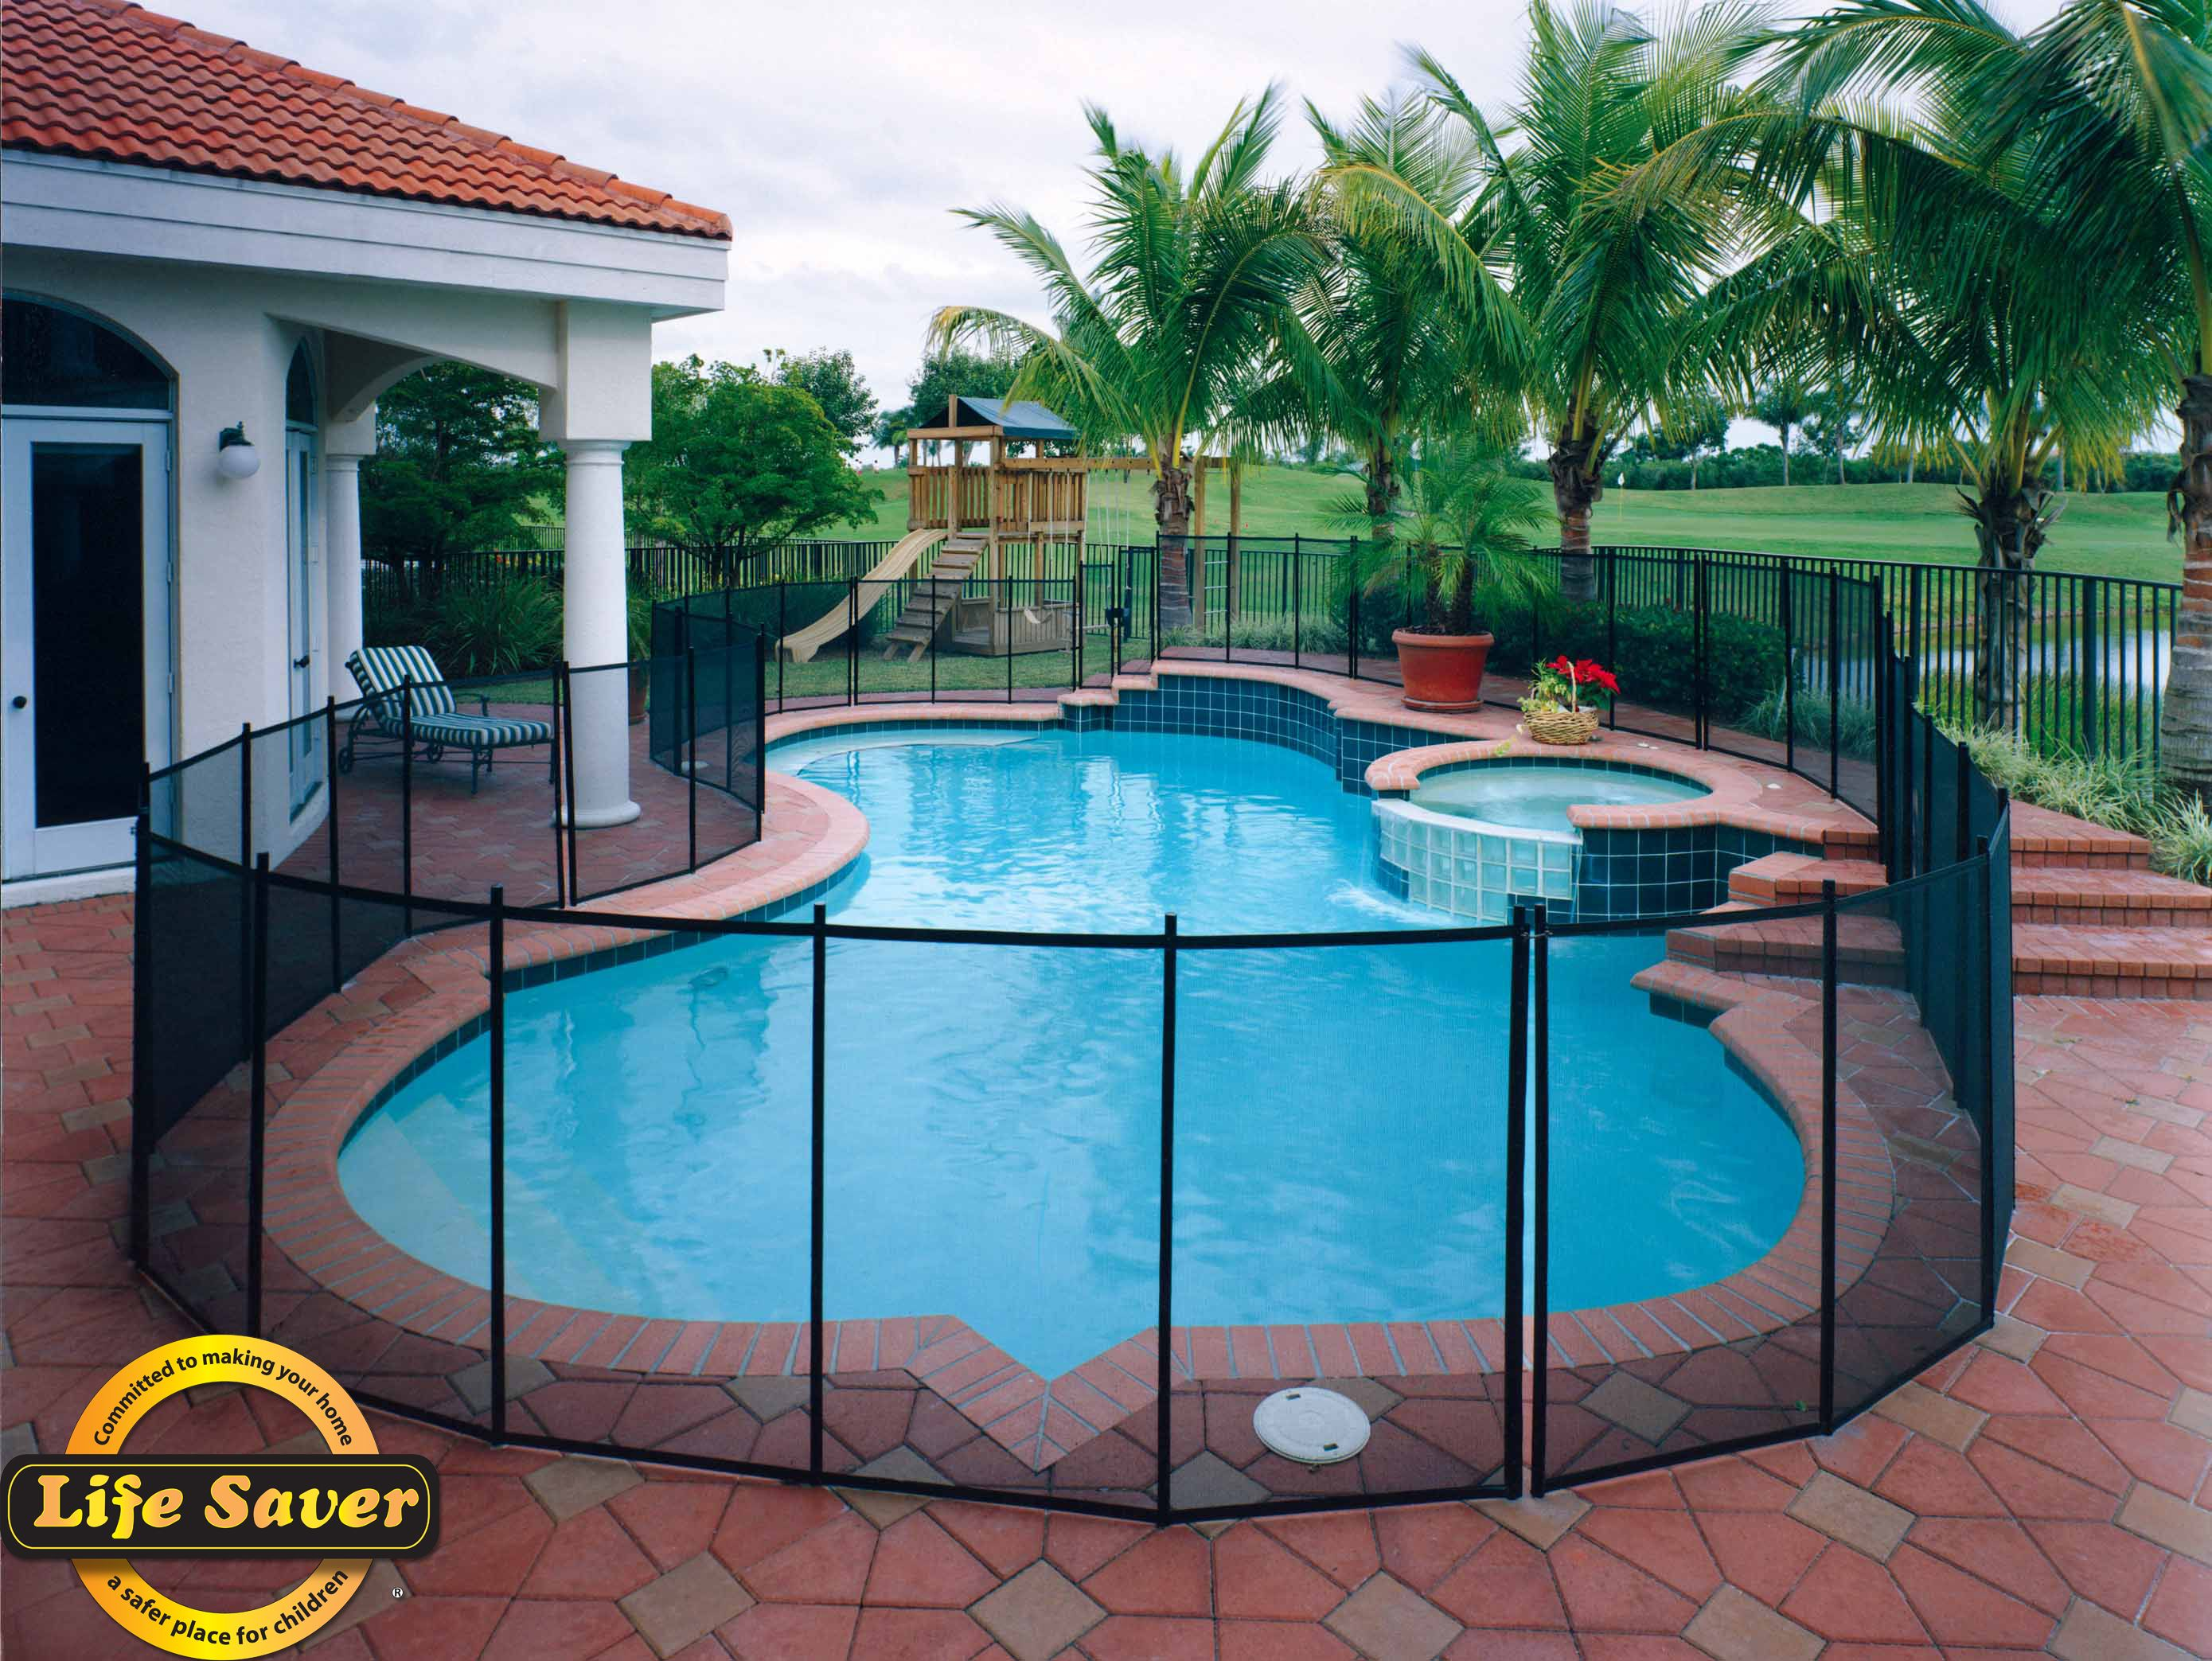 Removable mesh pool safety fence. 4' tall, all black